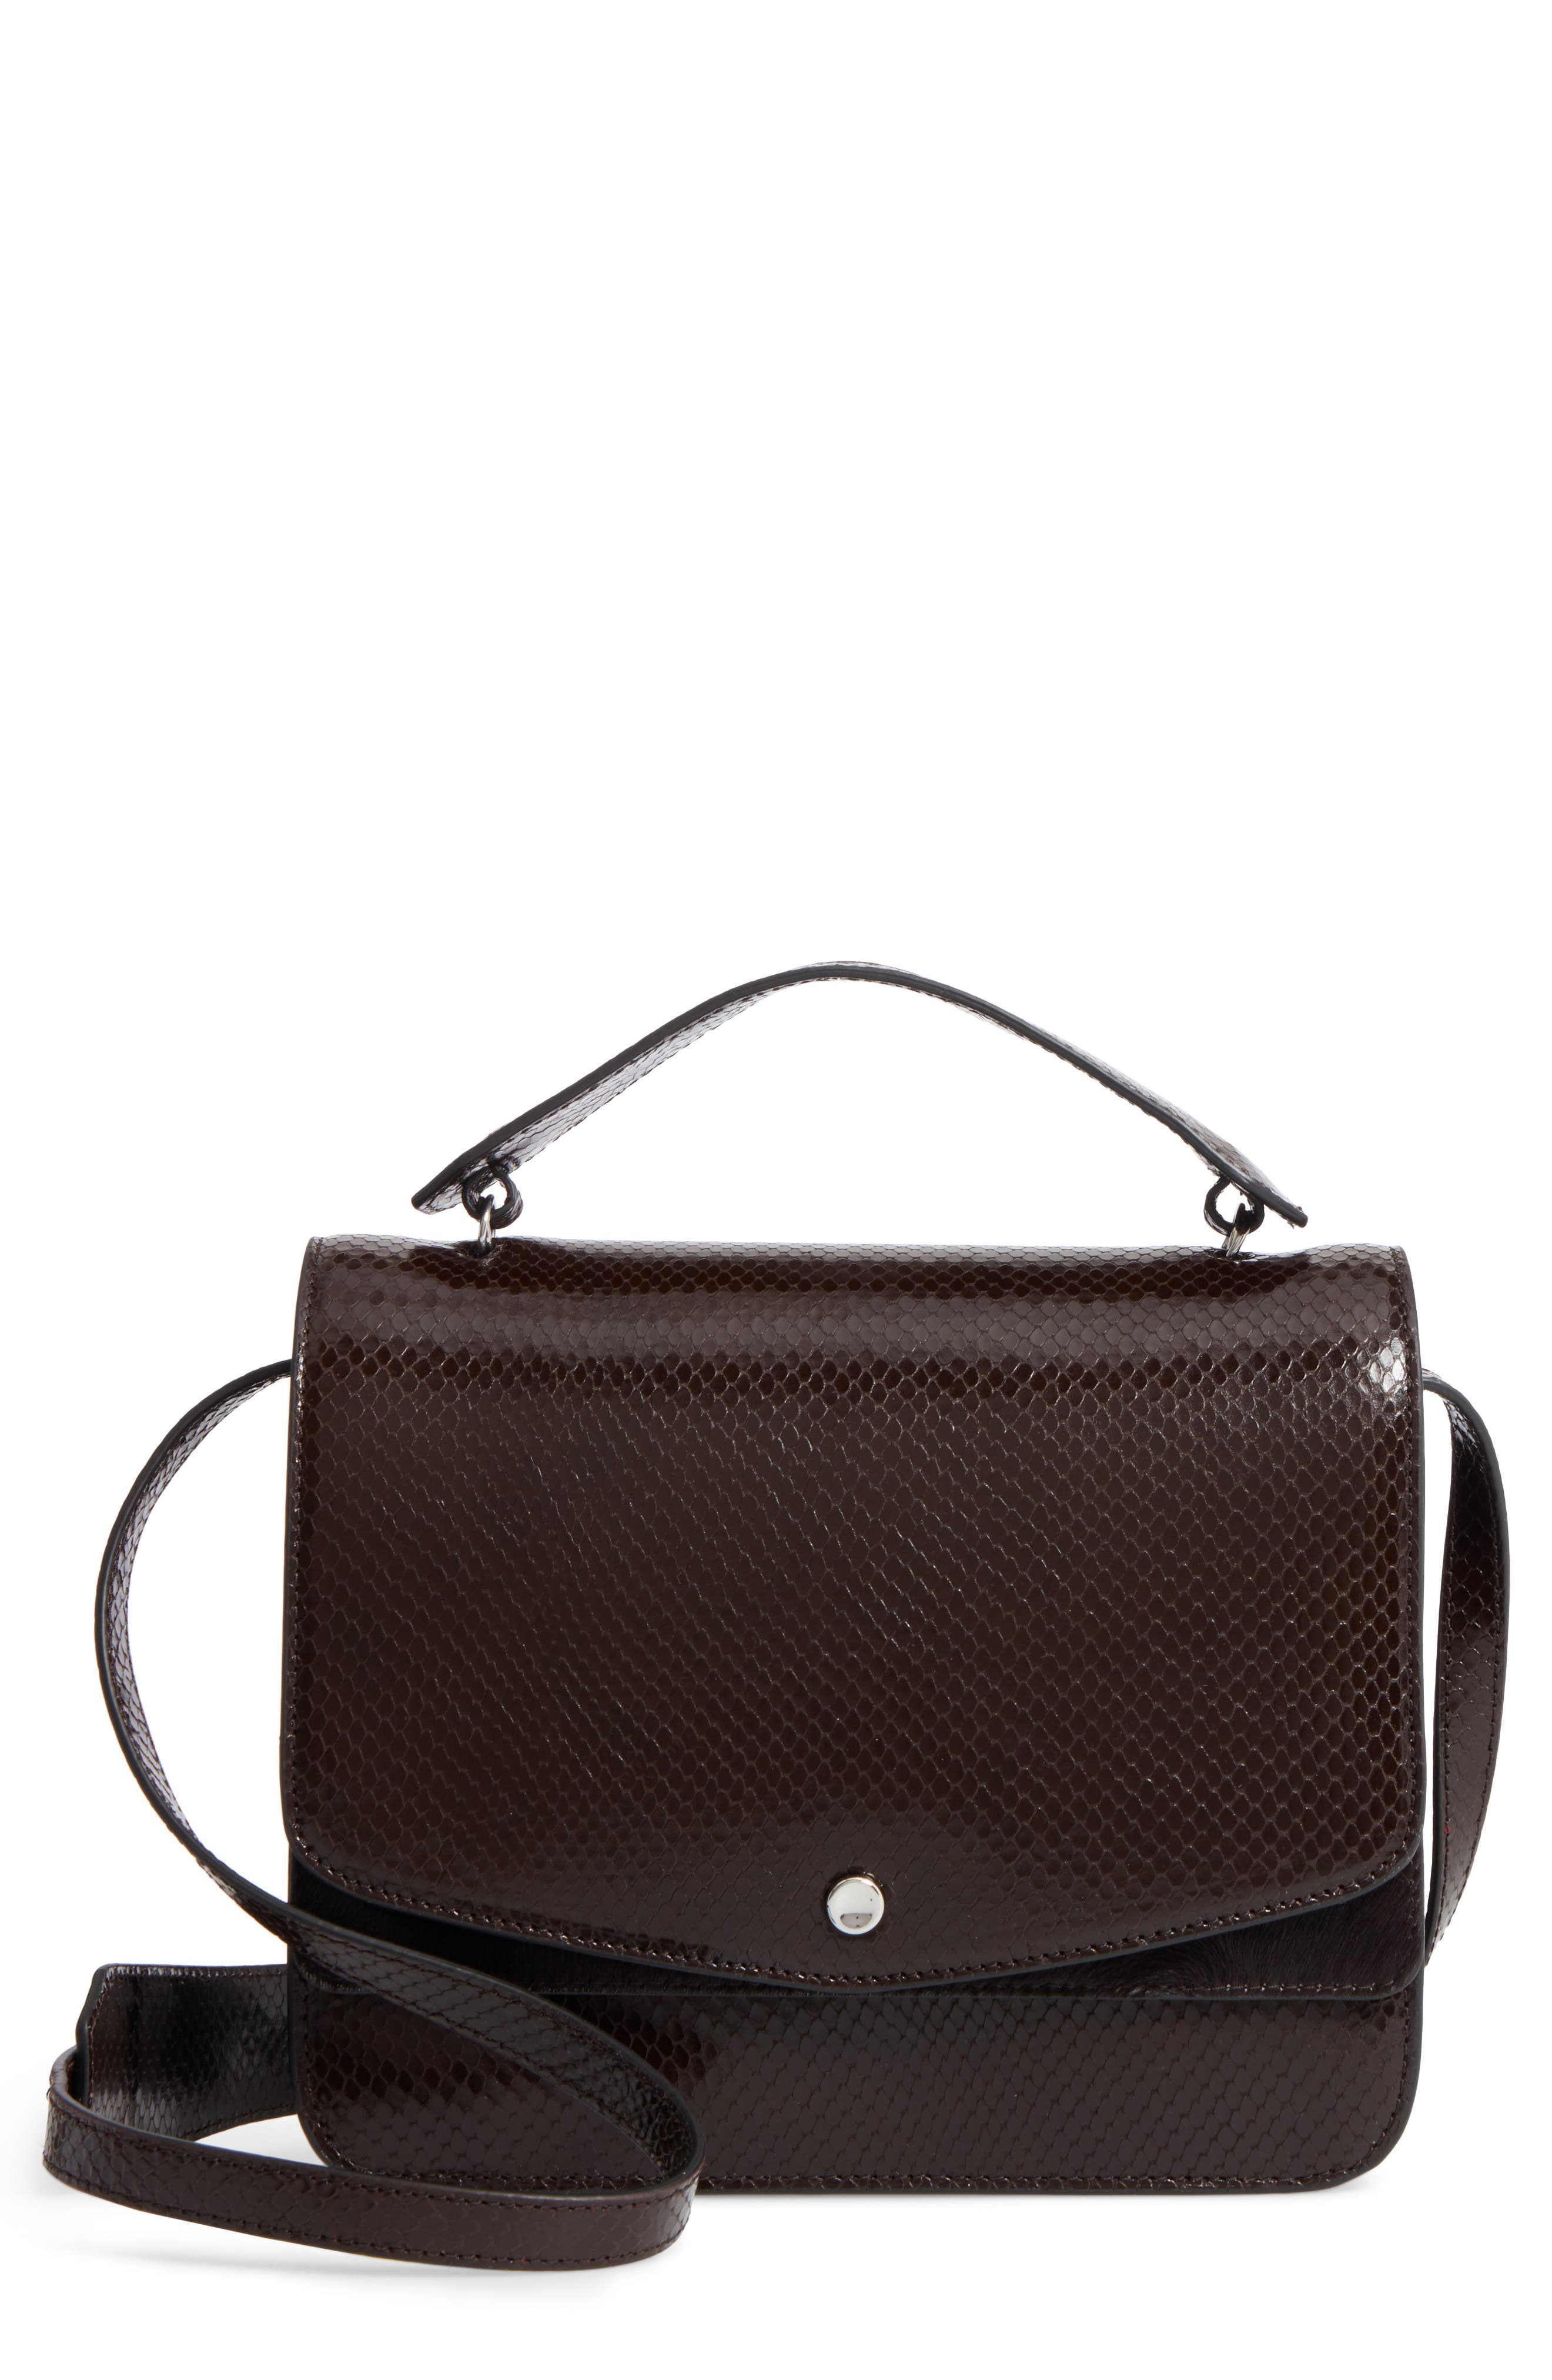 Eloise Genuine Calf Hair & Leather Shoulder Bag,                             Main thumbnail 1, color,                             Chocolate